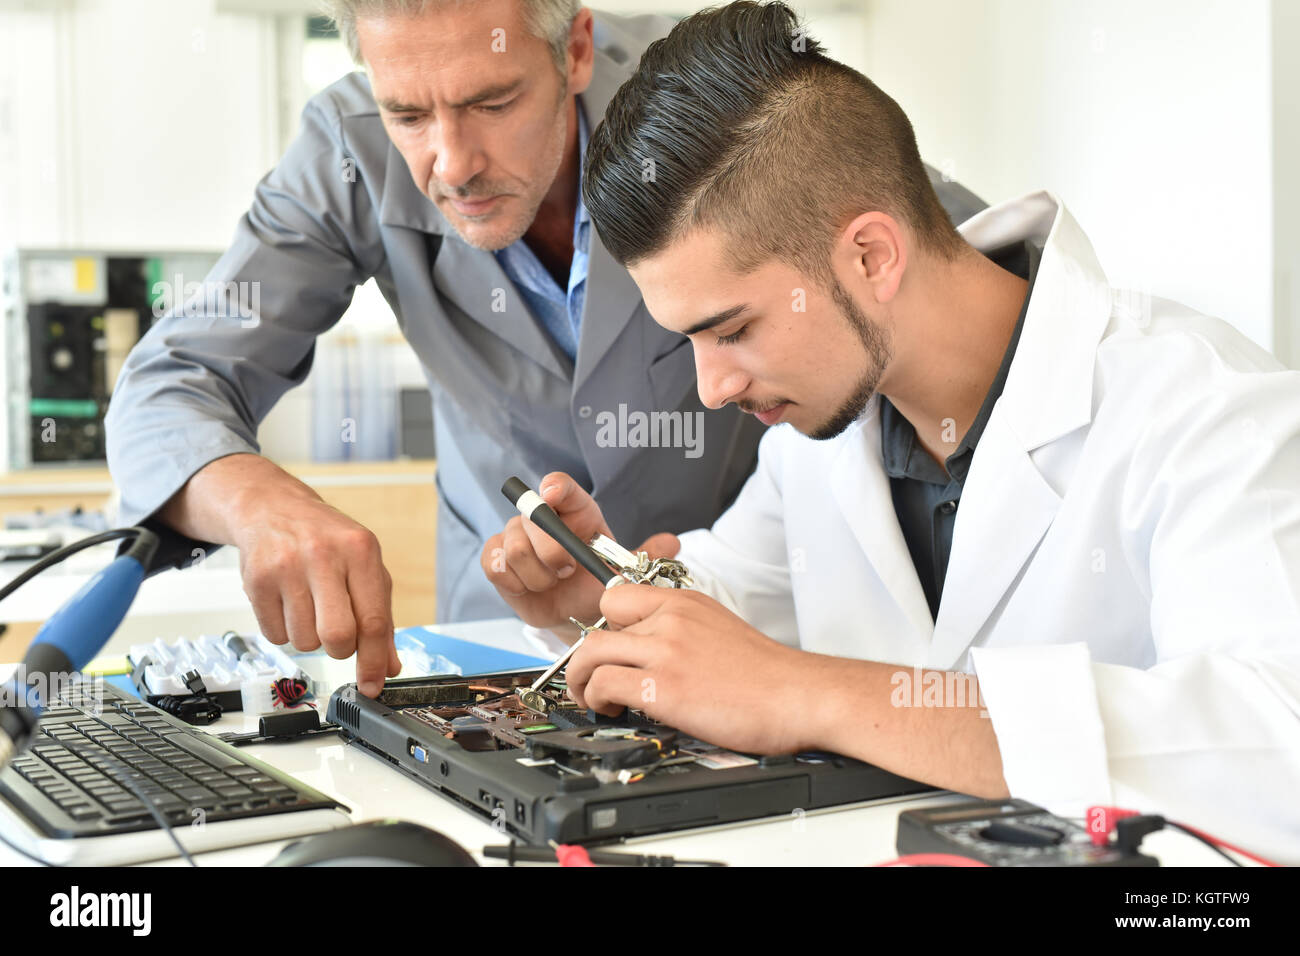 Student in electrical engineering course training with teacher - Stock Image